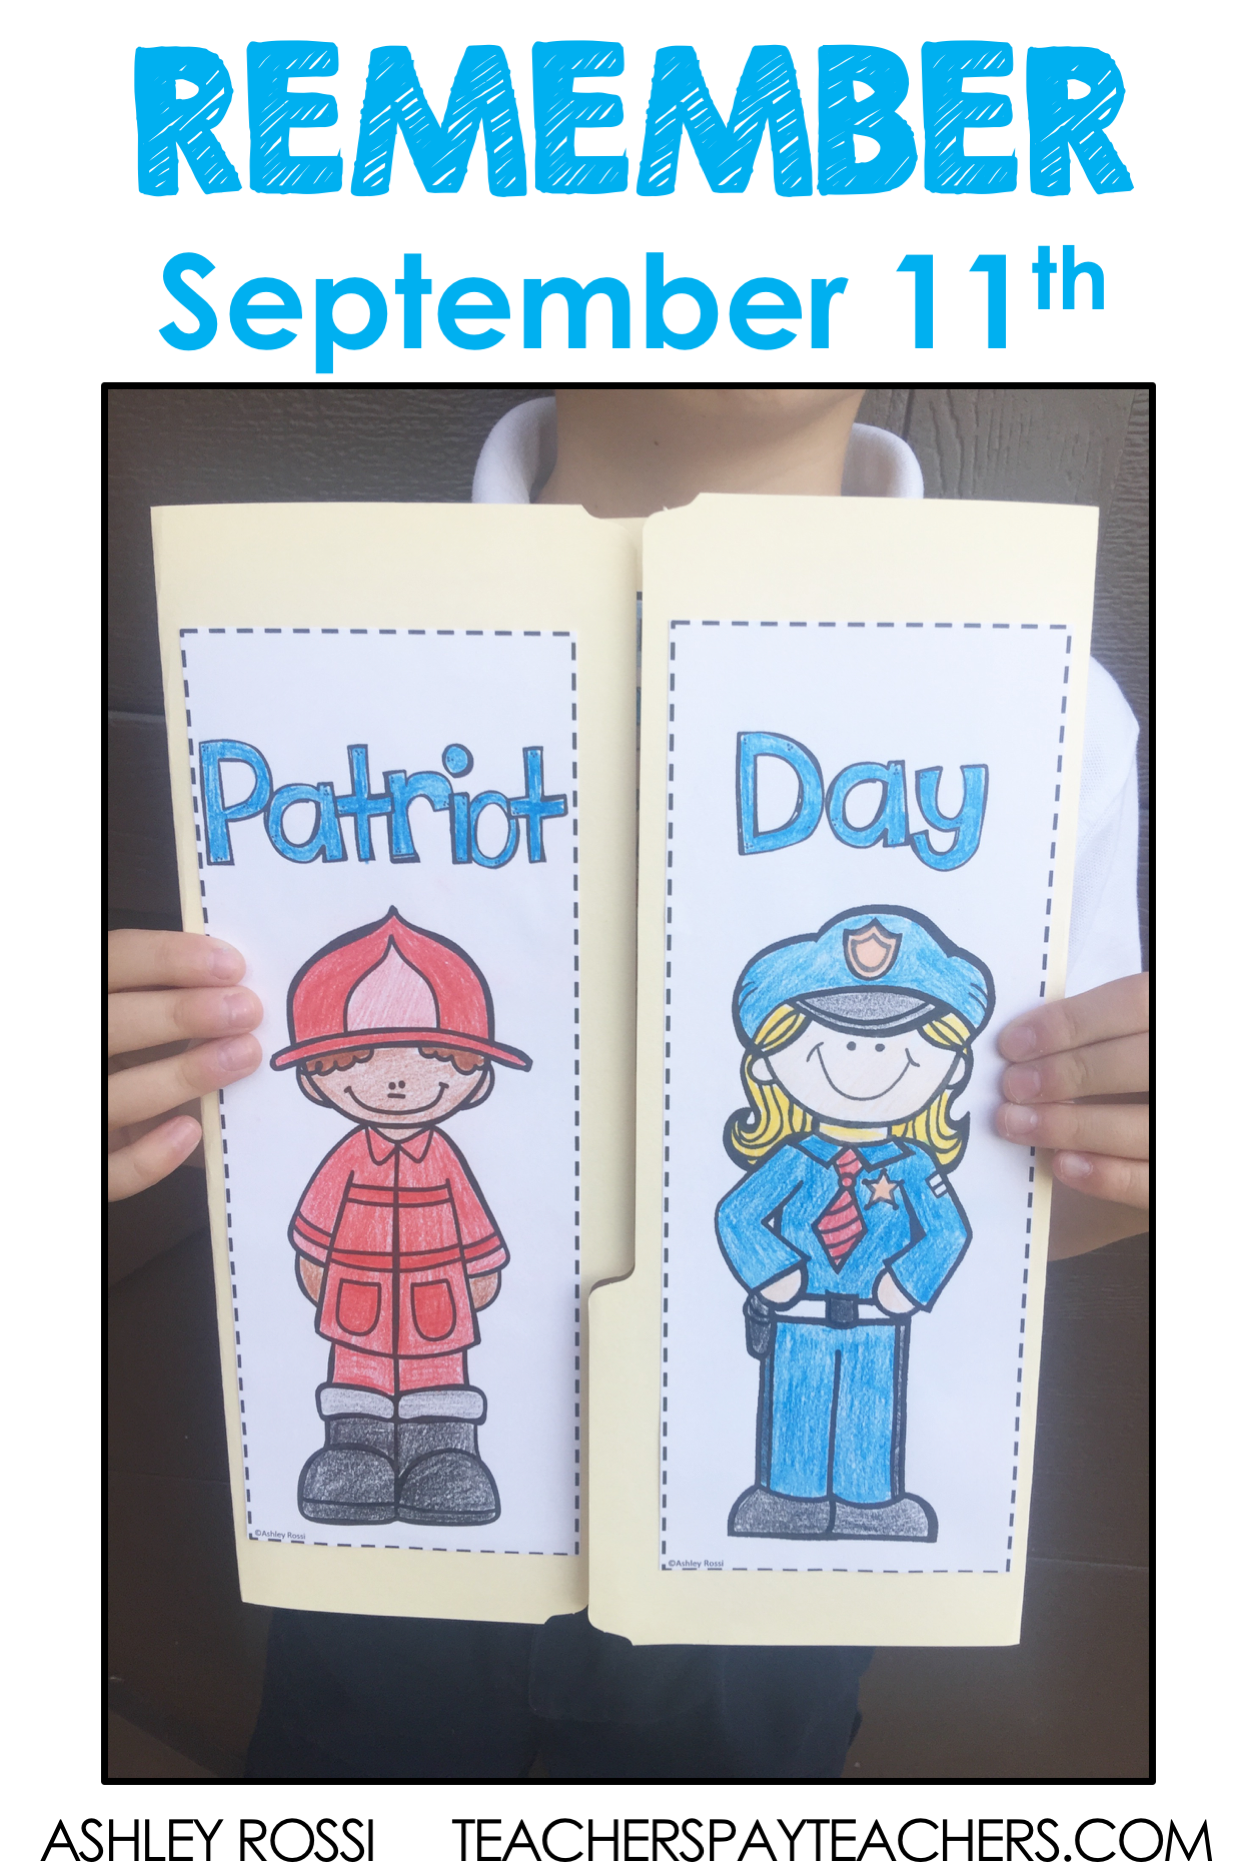 September 11 Lap Book For Patriot Day